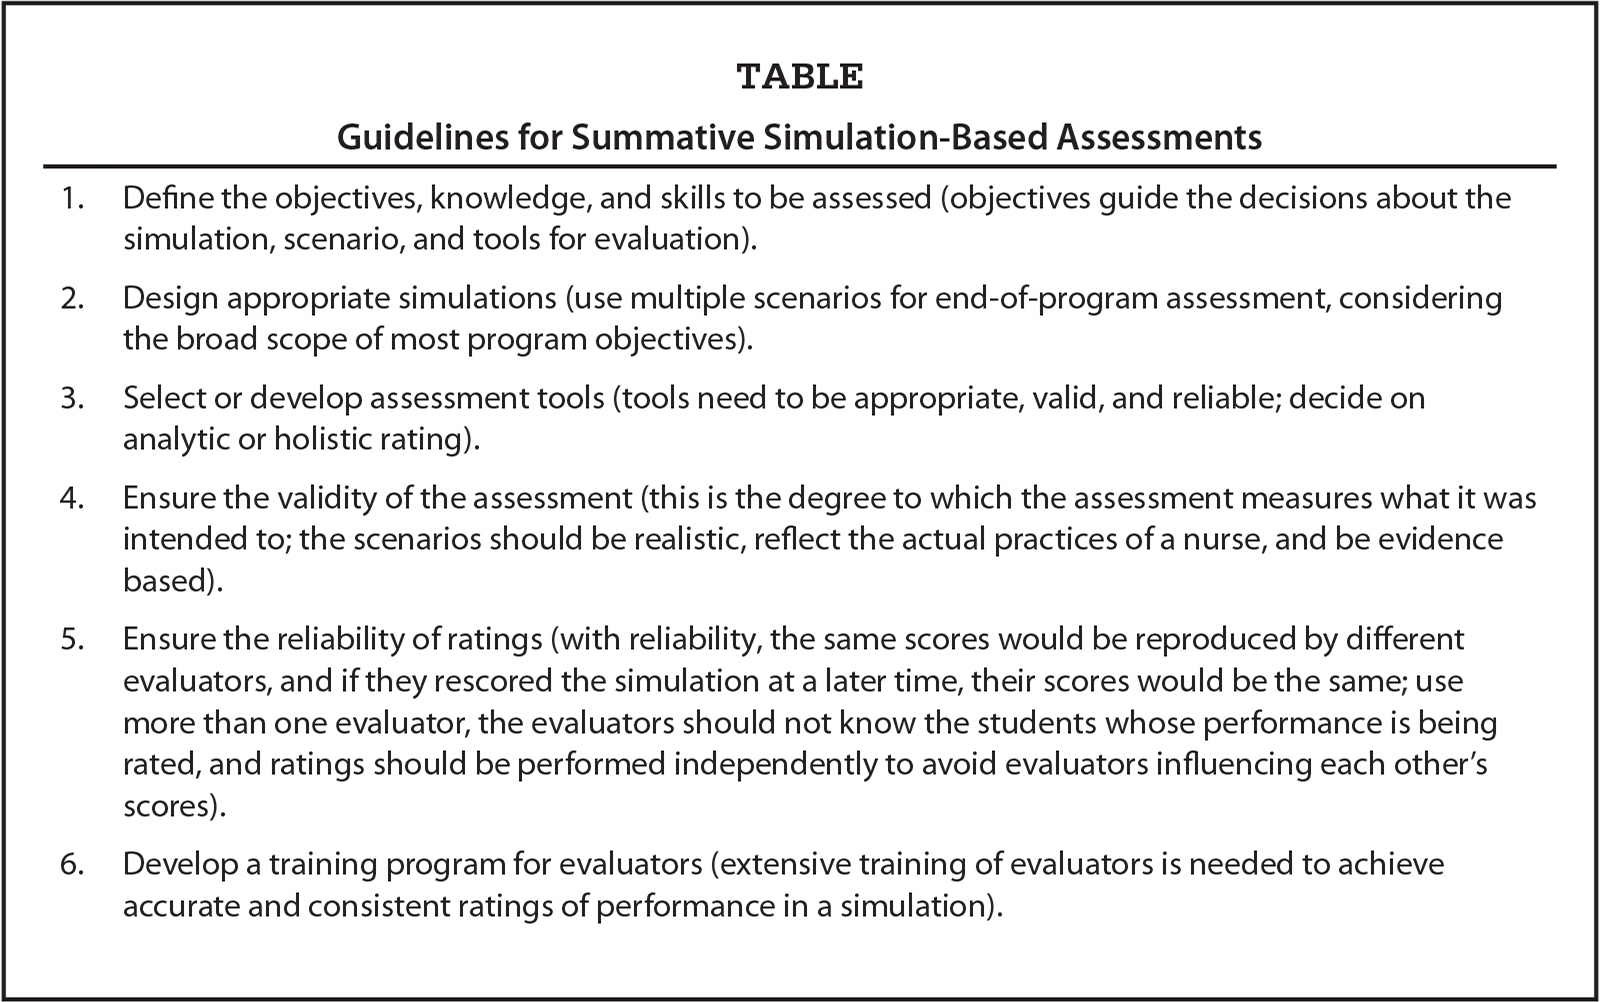 Guidelines for Summative Simulation-Based Assessments